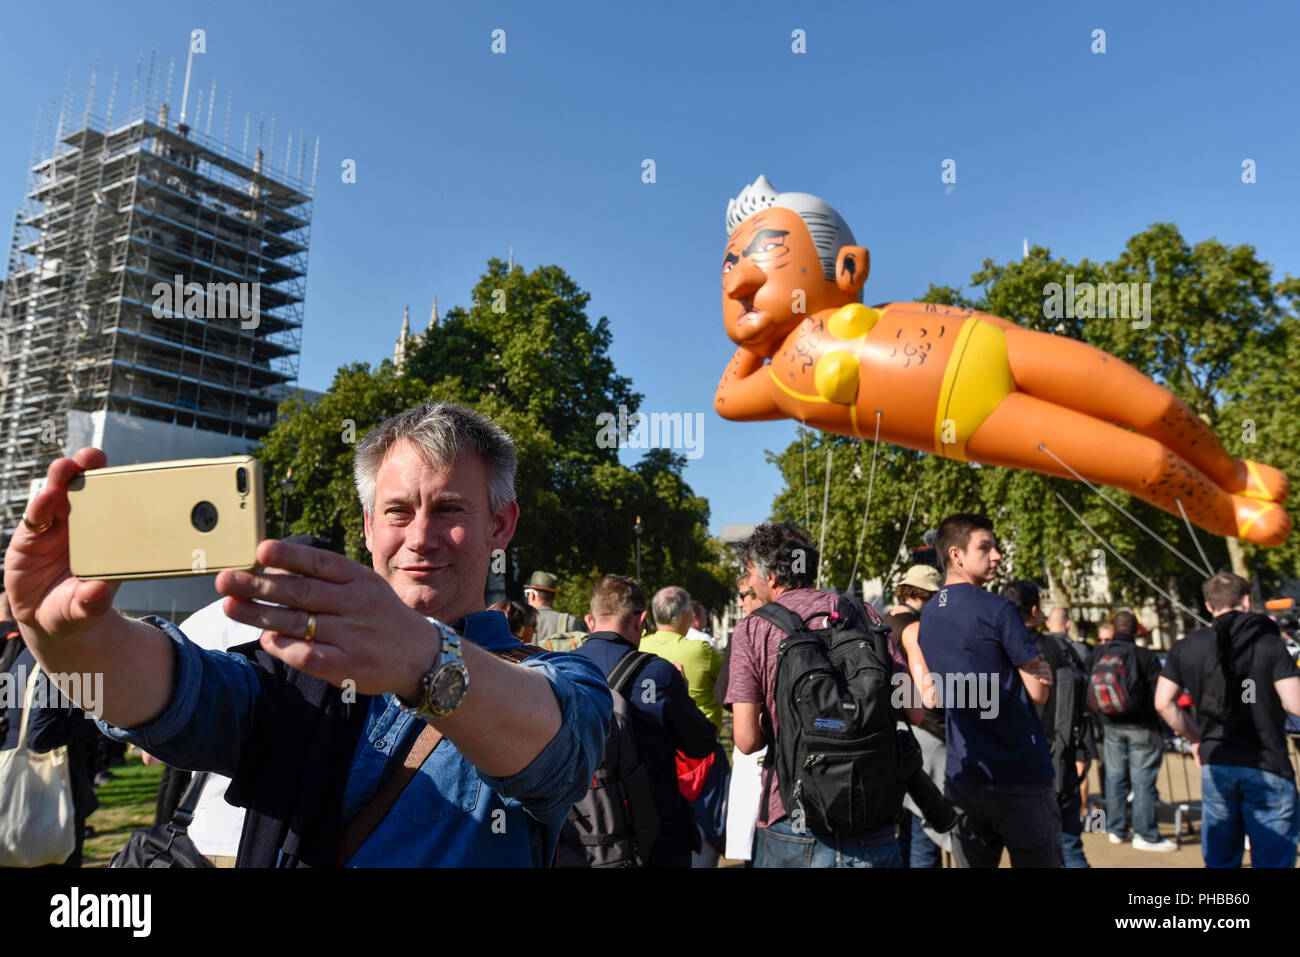 London, UK.  1 September 2018.  A man photographs a 29 foot giant balloon depicting Sadiq Khan, Mayor of London, wearing a yellow bikini, flying over Parliament Square.  Activist Yanny Bruere raised £58,000 to fly the balloon in protest at the Mayor's decision to allow a giant balloon of Donald Trump as a baby to be flown during his visit to the UK.  The Sadiq Khan balloon is part of Buere's 'Make London Safe Again' campaign, a reference to a surge in violent crime in London and Mr Trump's slogan 'Make America Safe Again'. Credit: Stephen Chung / Alamy Live News - Stock Image